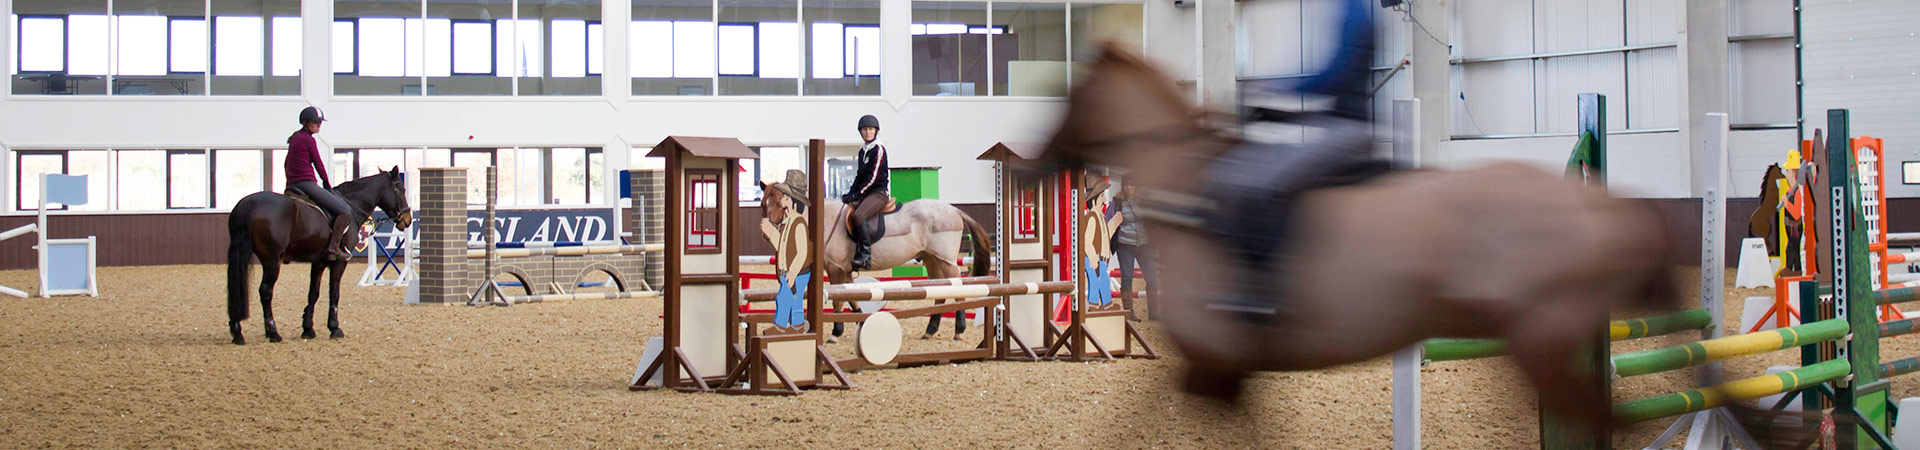 Bury Farm Equestrian Village